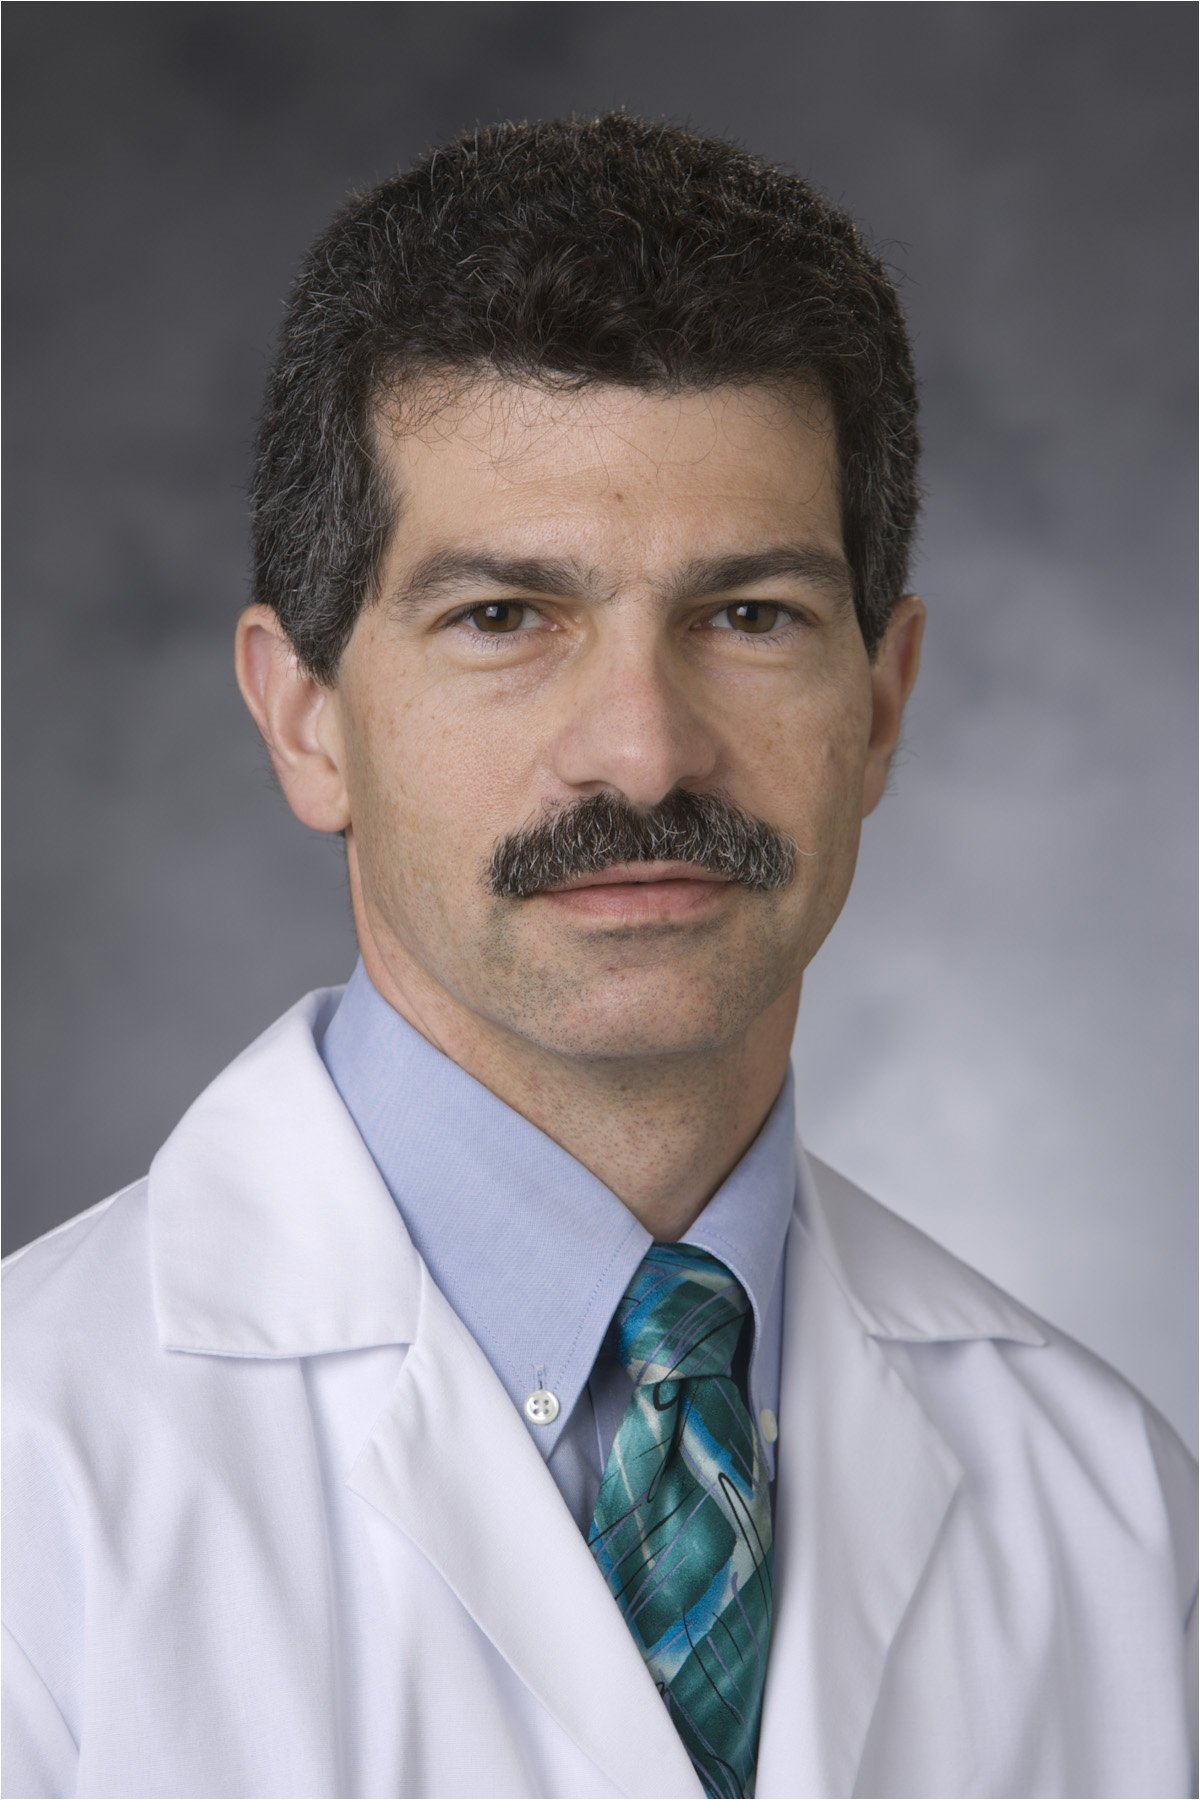 Paul Mosca, MD, PhD, MBA